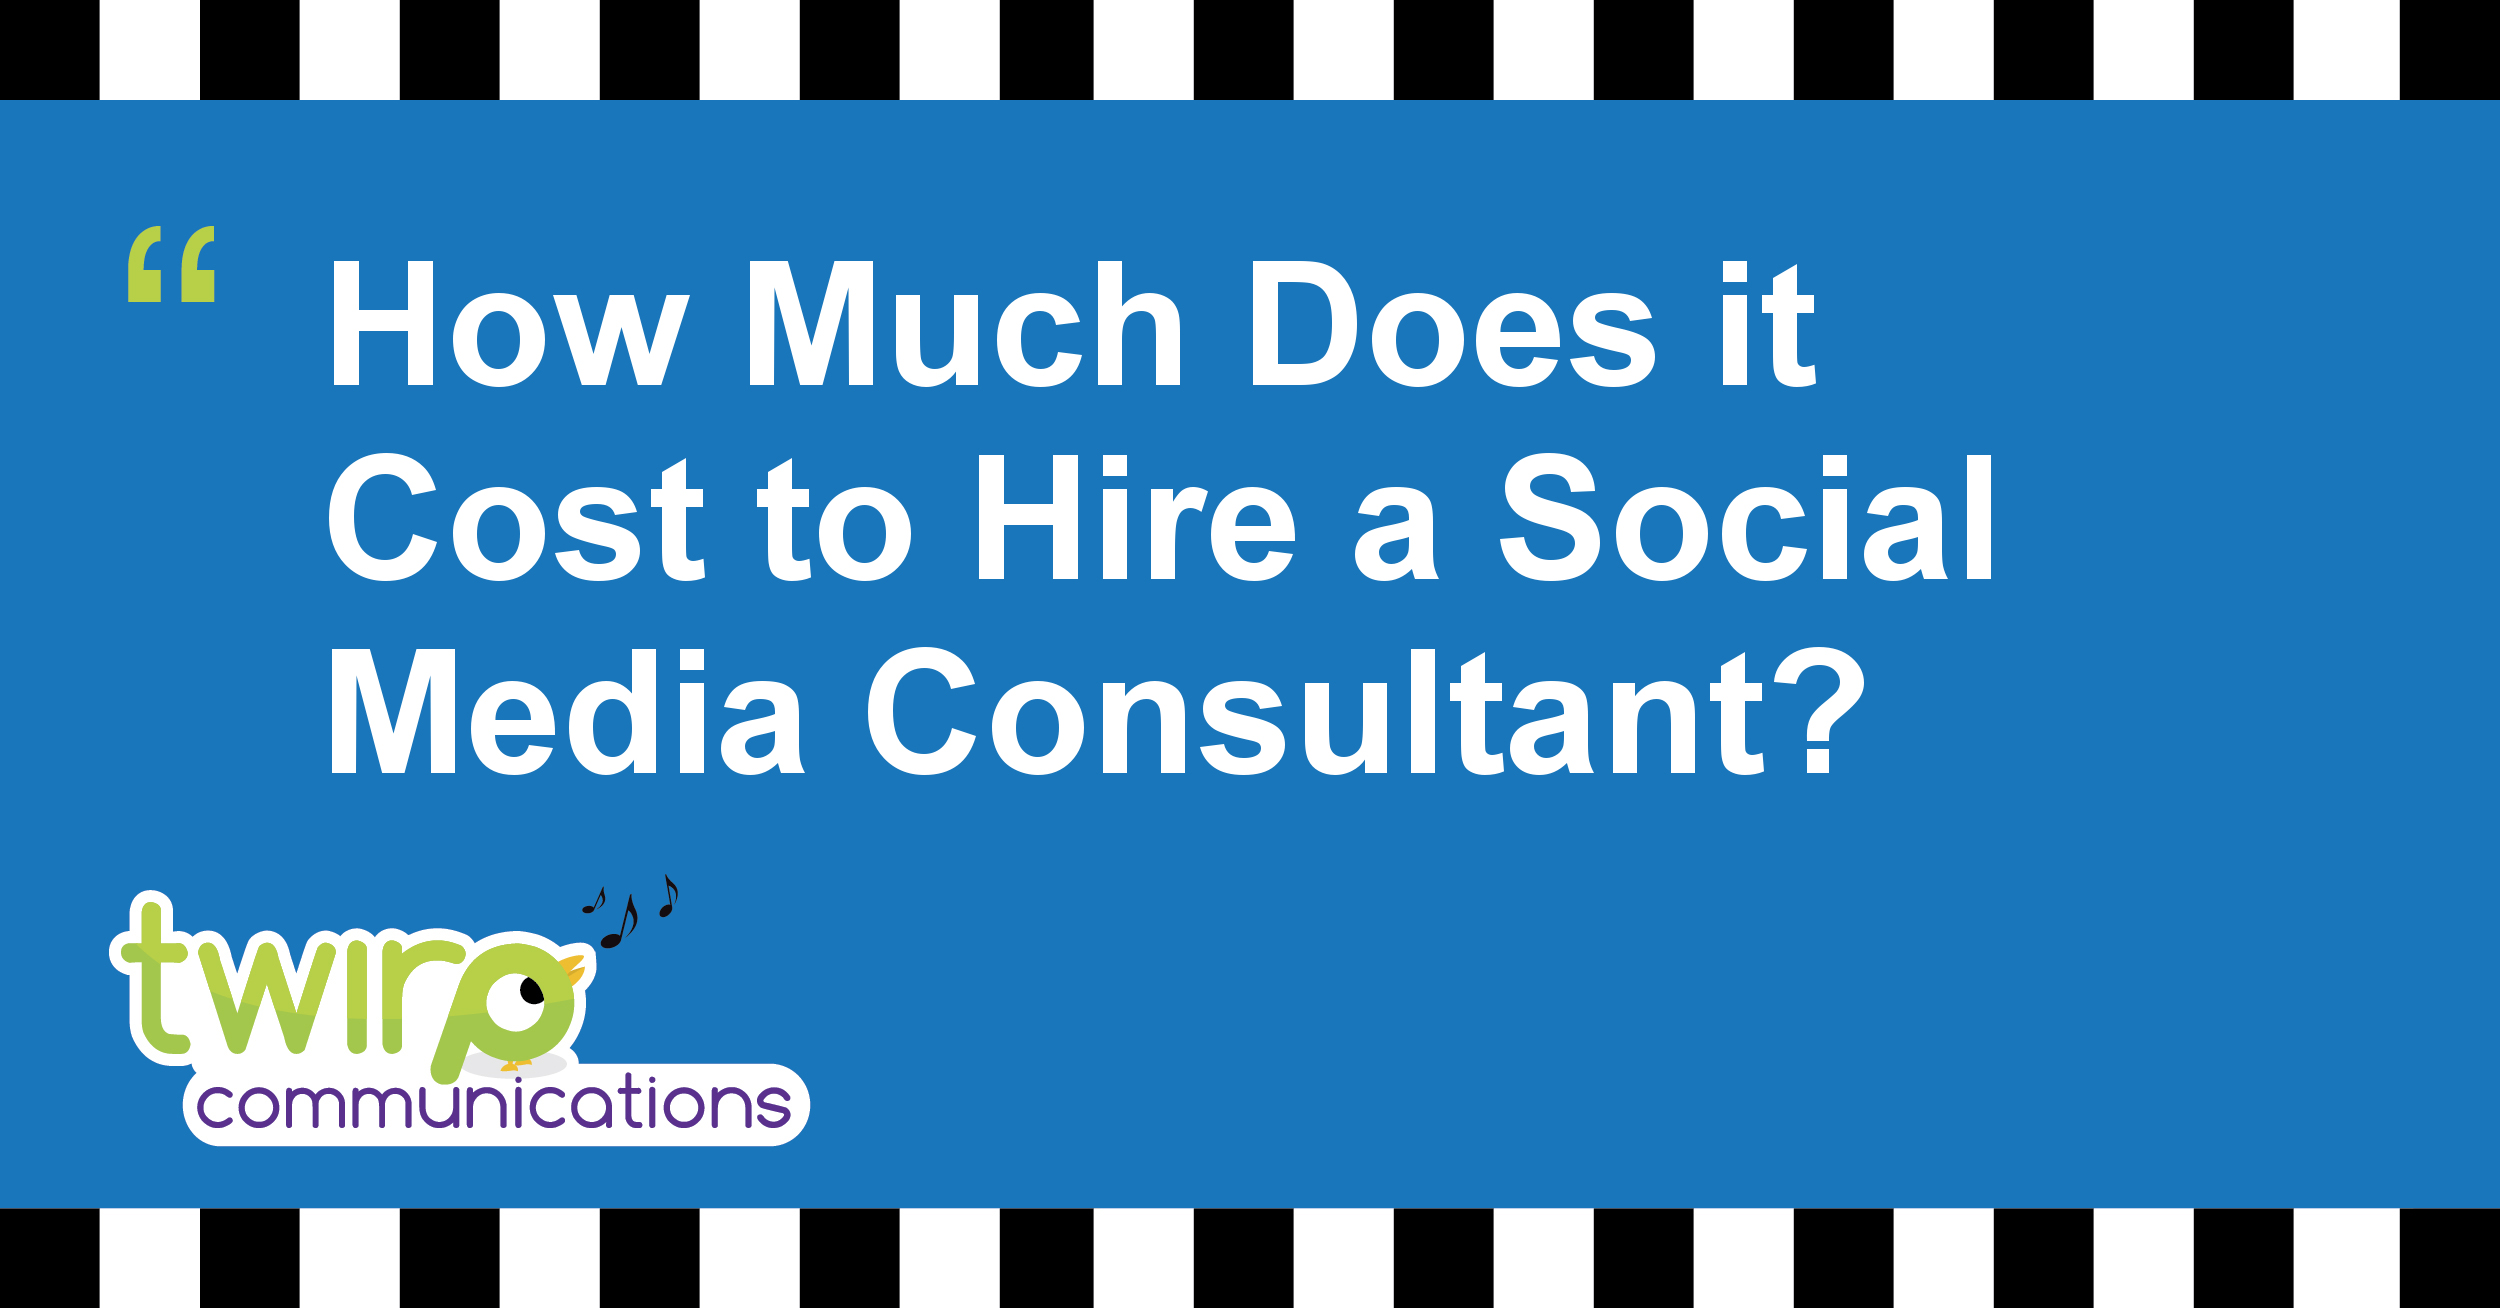 How Much Does it Cost to Hire a Social Media Consultant